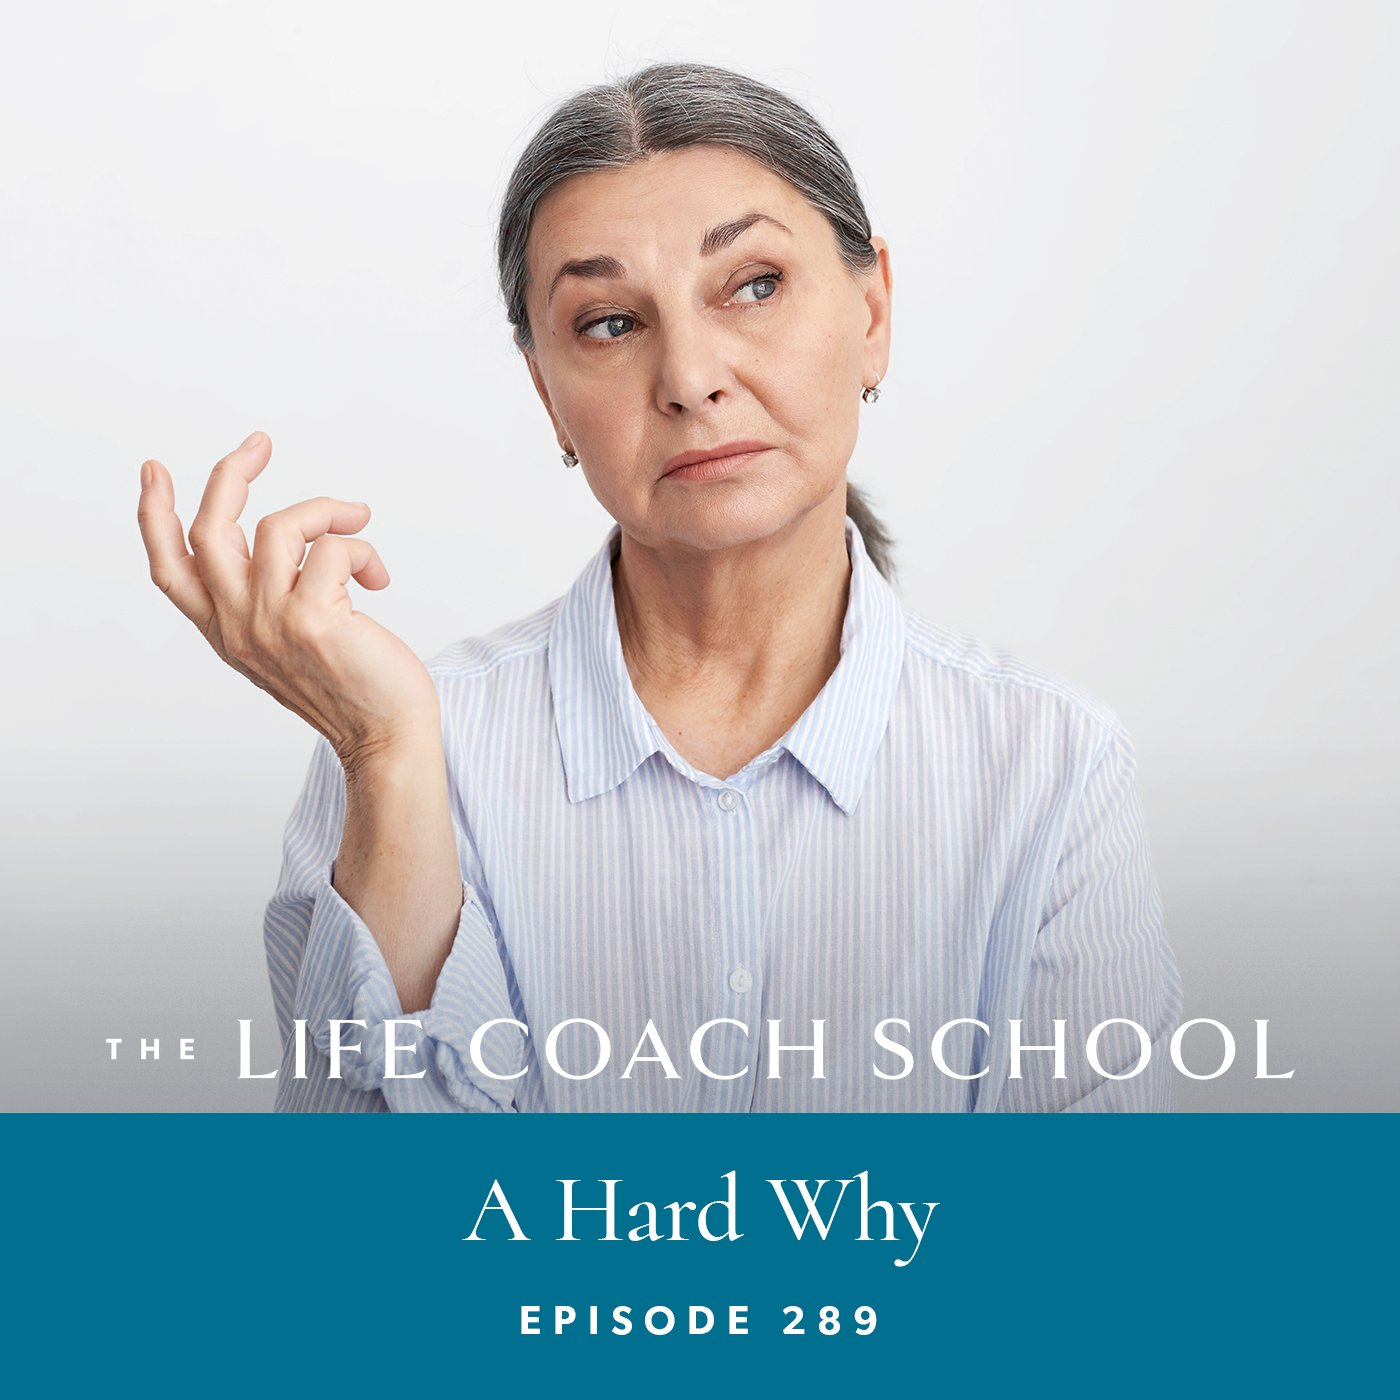 The Life Coach School Podcast with Brooke Castillo | Episode 289 | A Hard Why